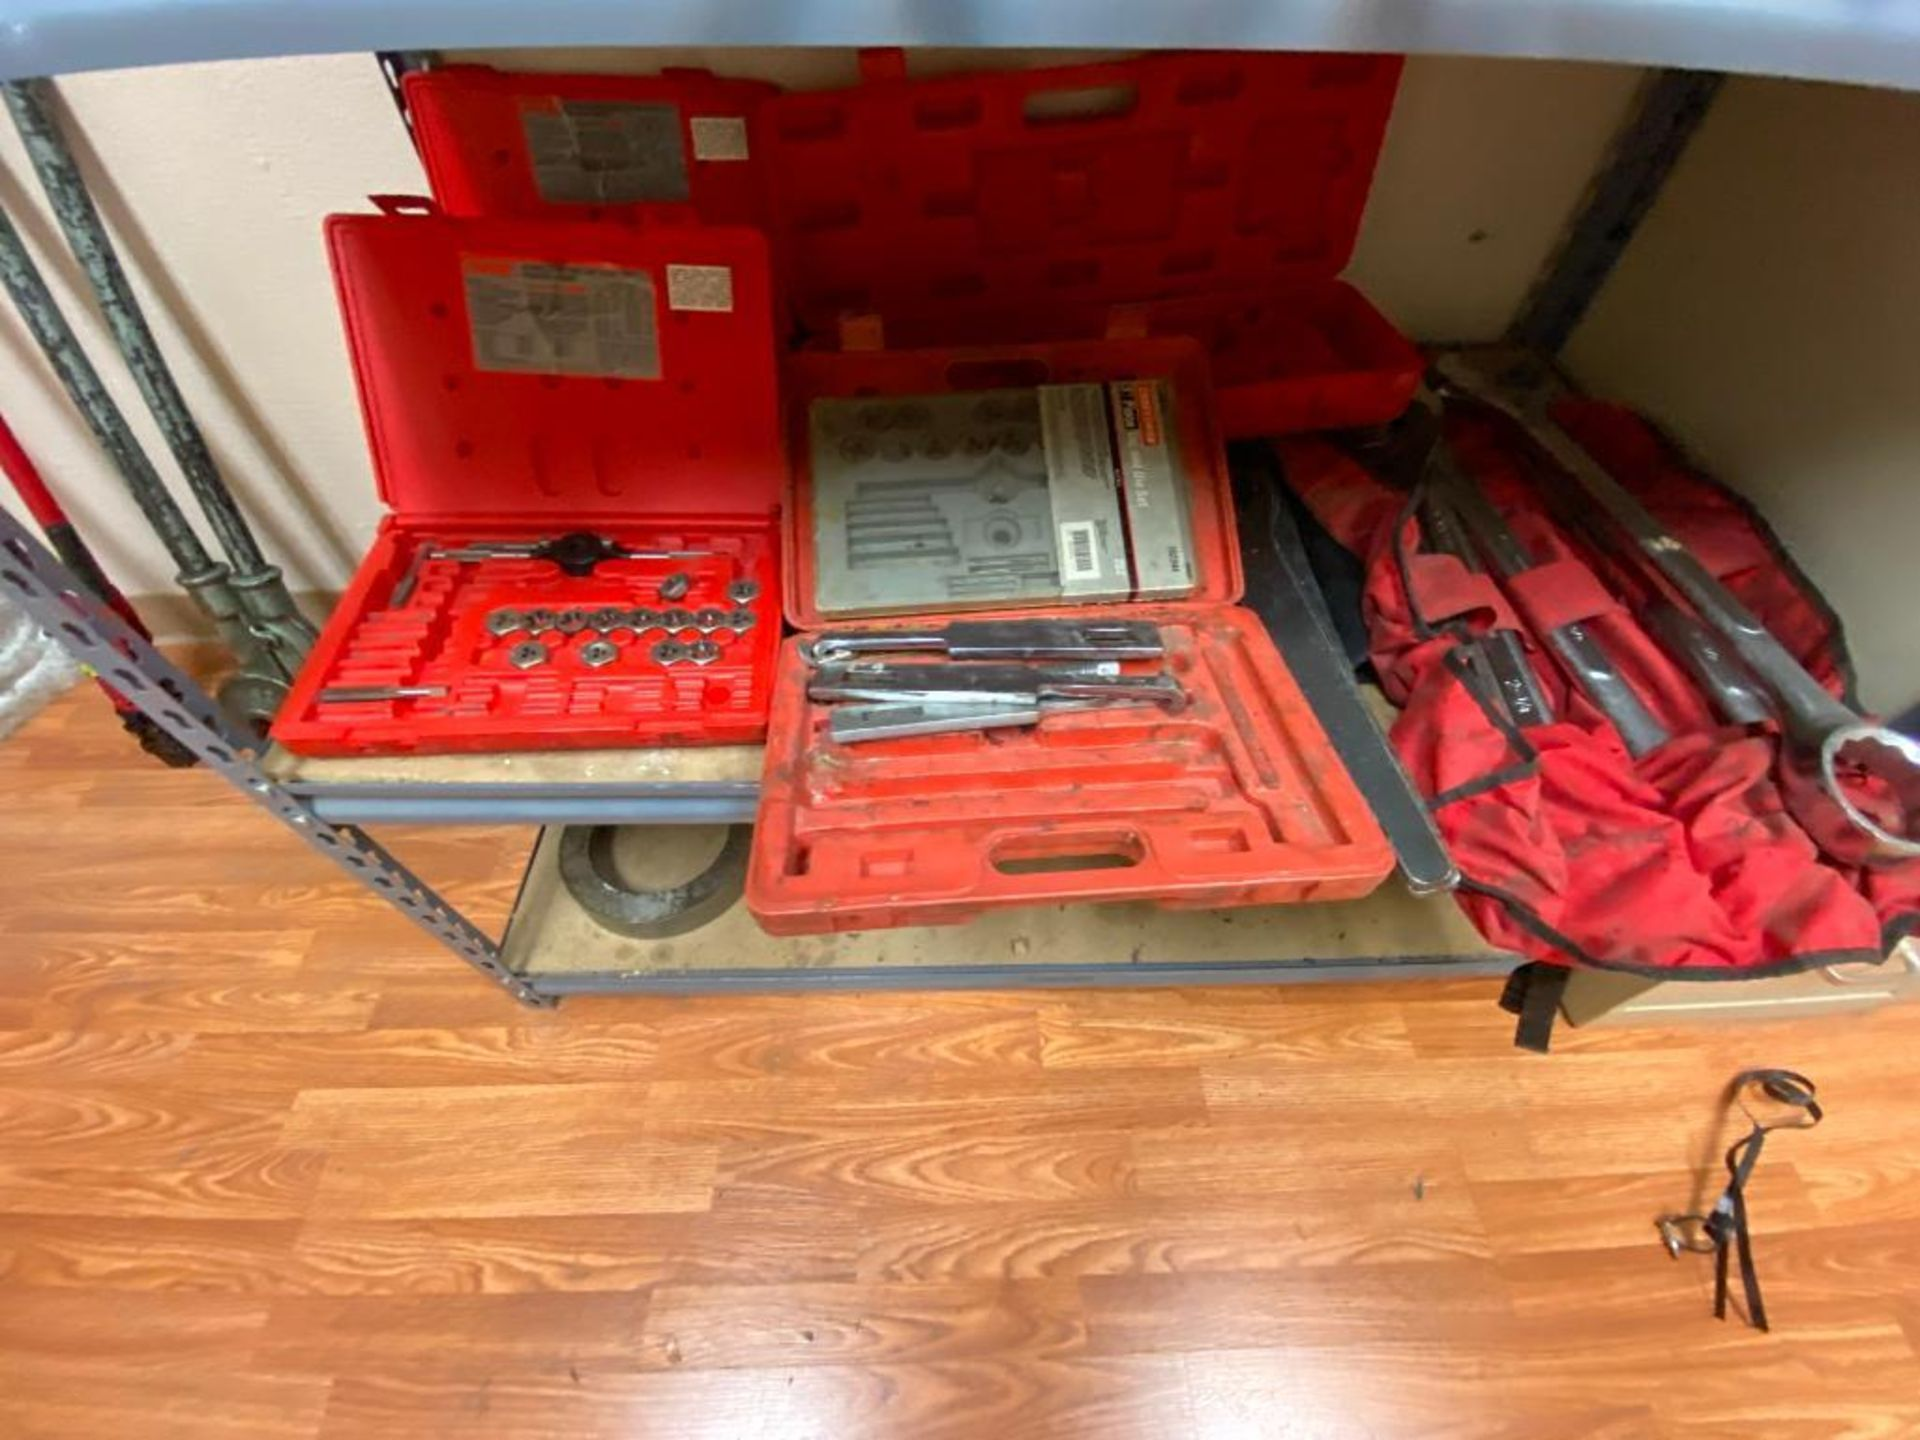 various tools includes bits, large wrenches, lockout tagout kit, grinder - Image 12 of 18